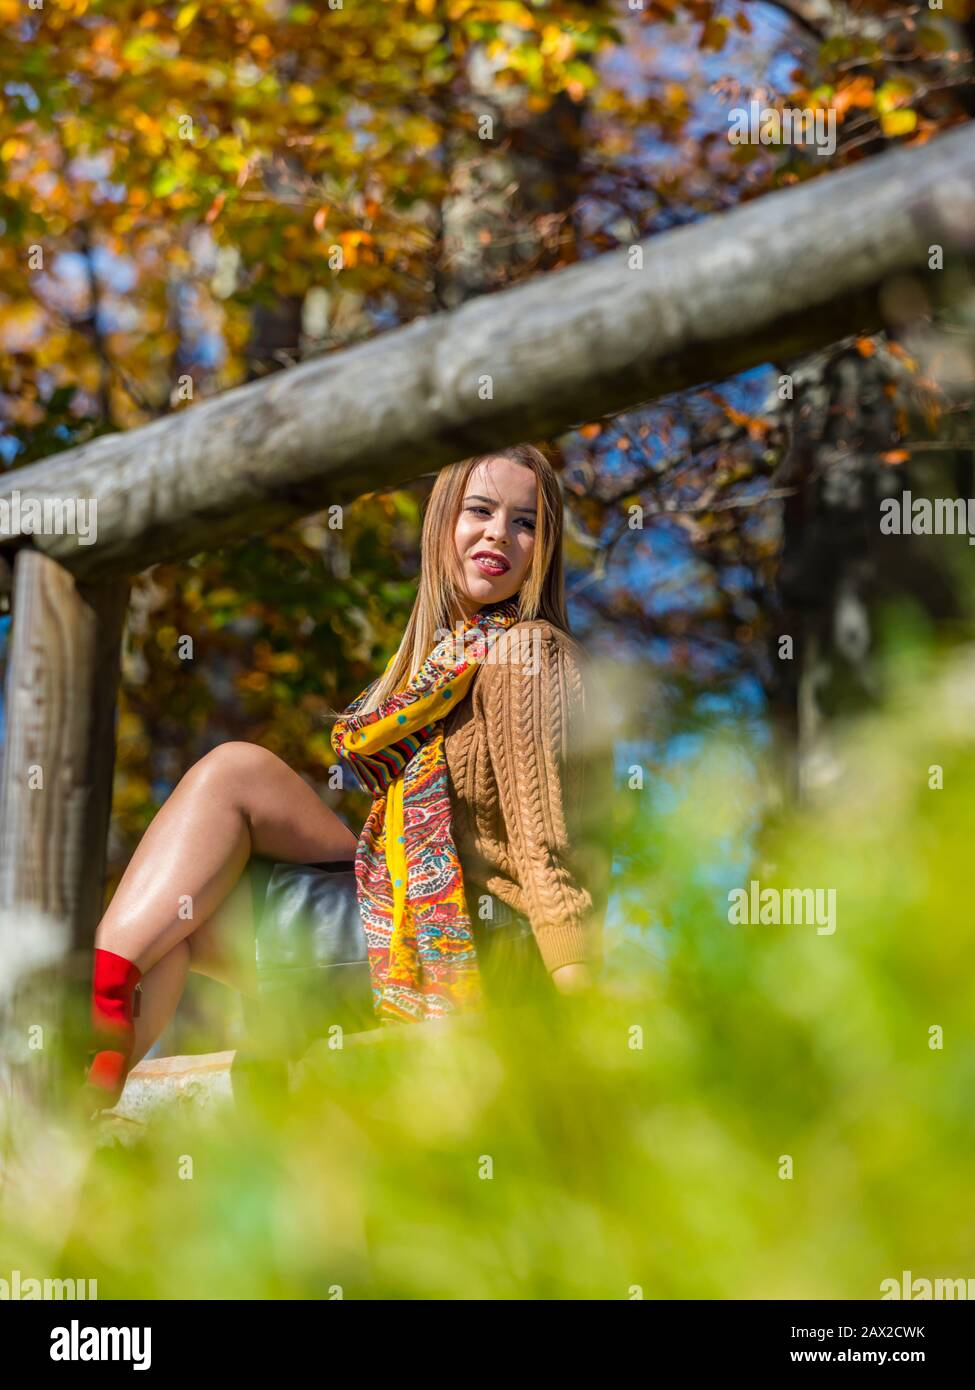 Autumn in forest teen girl isolated bellow wooden fence blurry background vegetation exposed leg legs knee knees looking aside smiling smile away Stock Photo